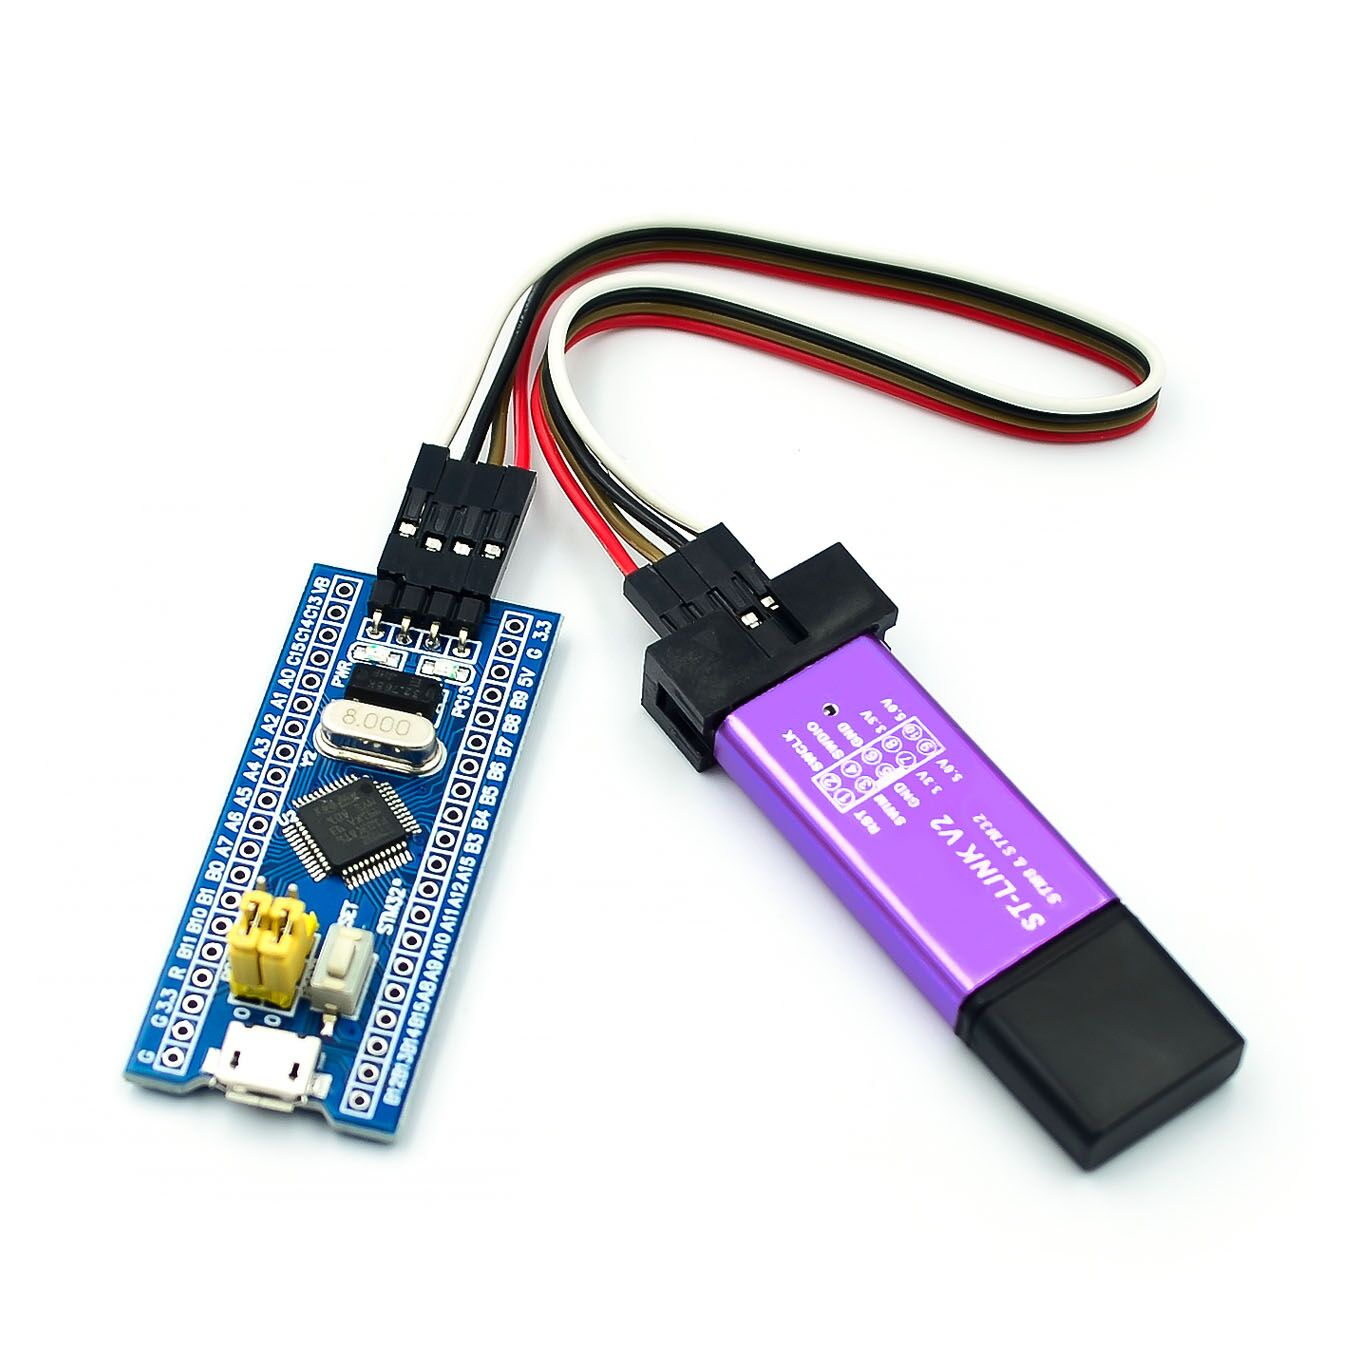 CKS32F103C8T6 STM32F103C8T6 ARM STM32 Minimum System Development Board Module For Arduin